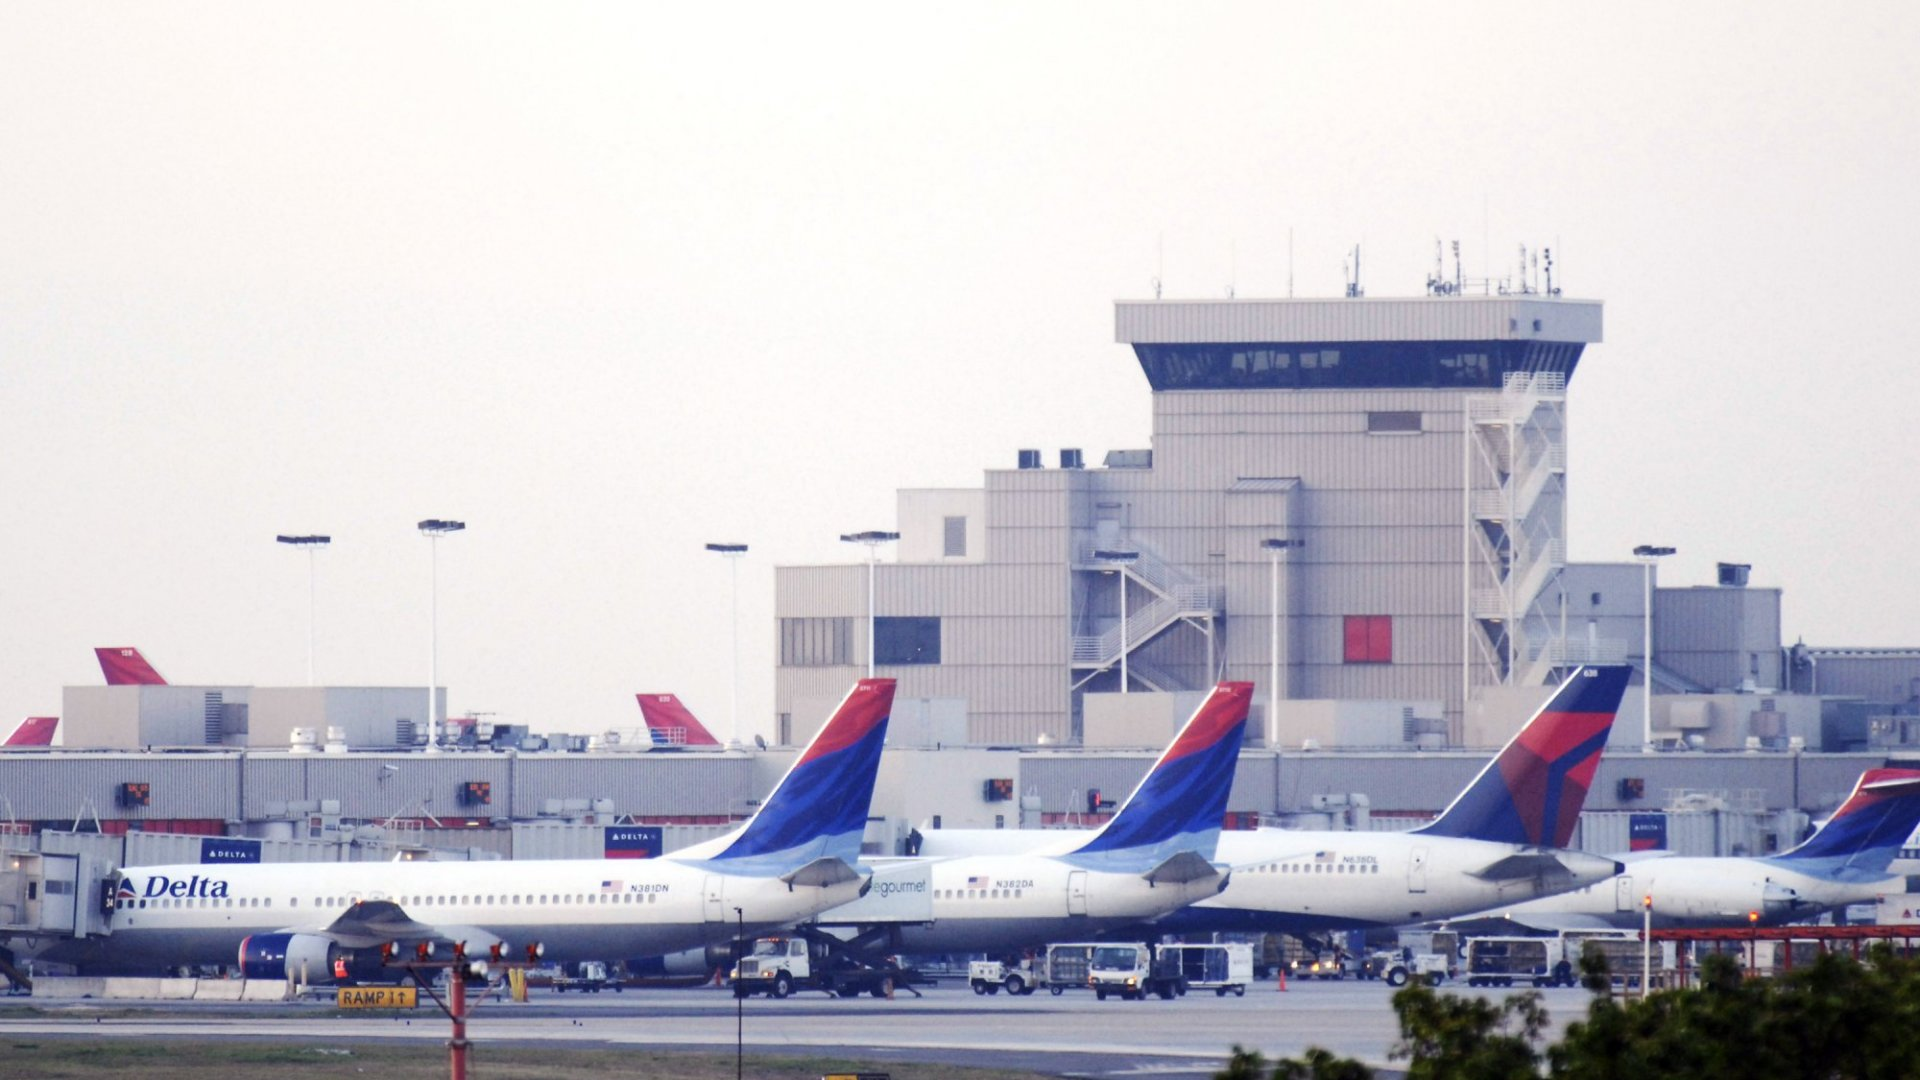 Ride-Sharing Services Can Now Legally Operate at The World's Busiest Airport